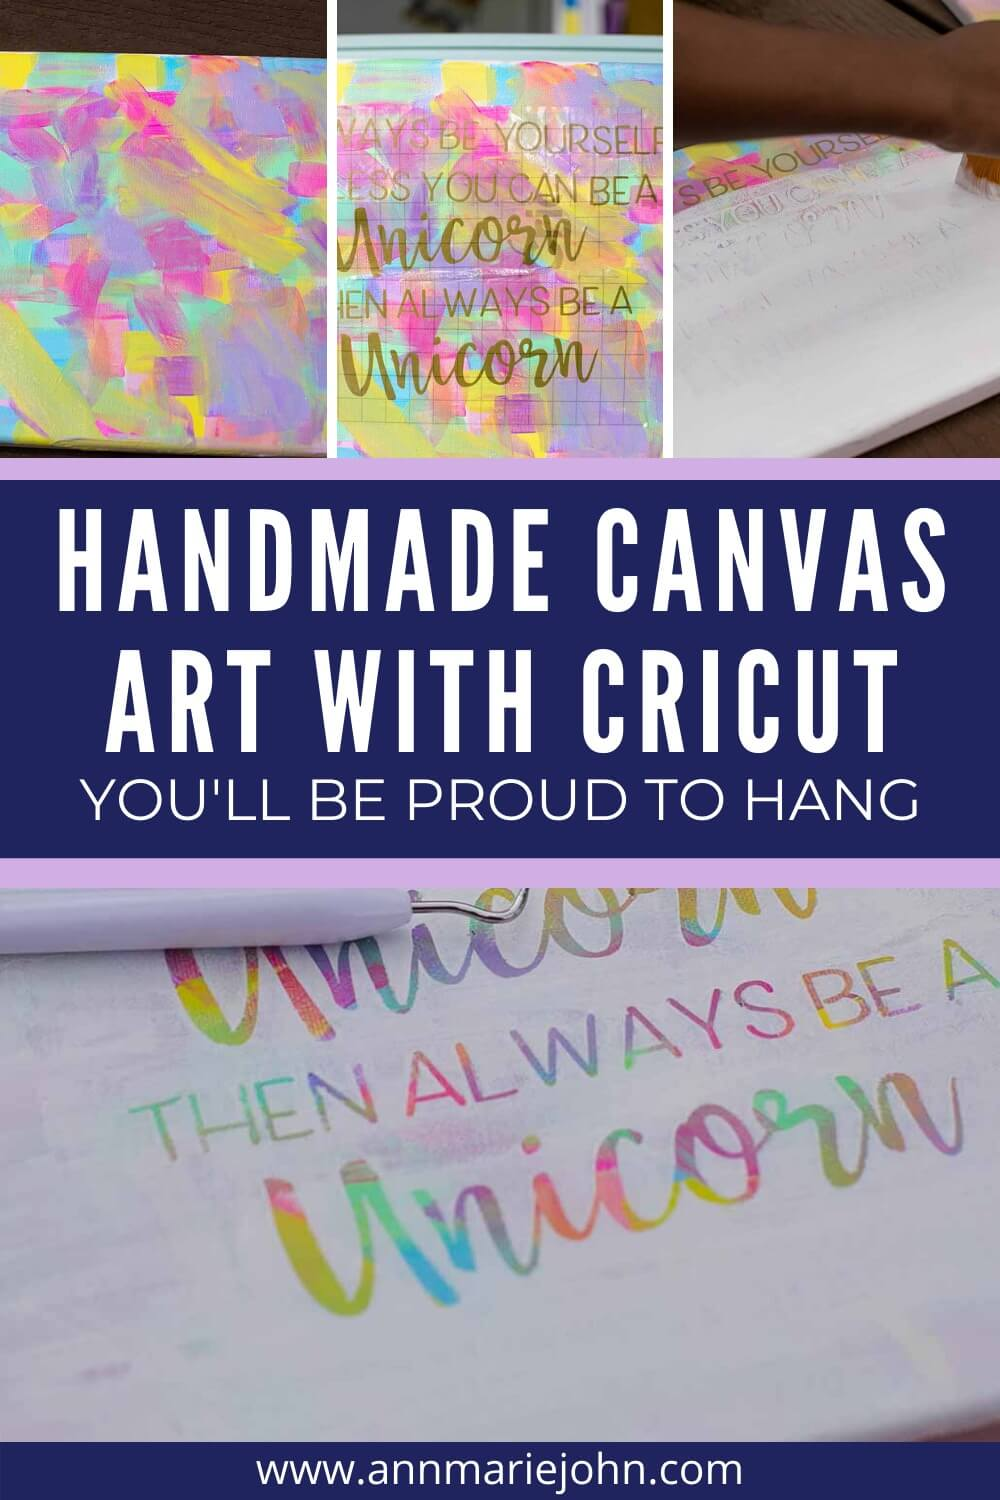 Homemade Canvas Art With Cricut You'll be Proud to Hang